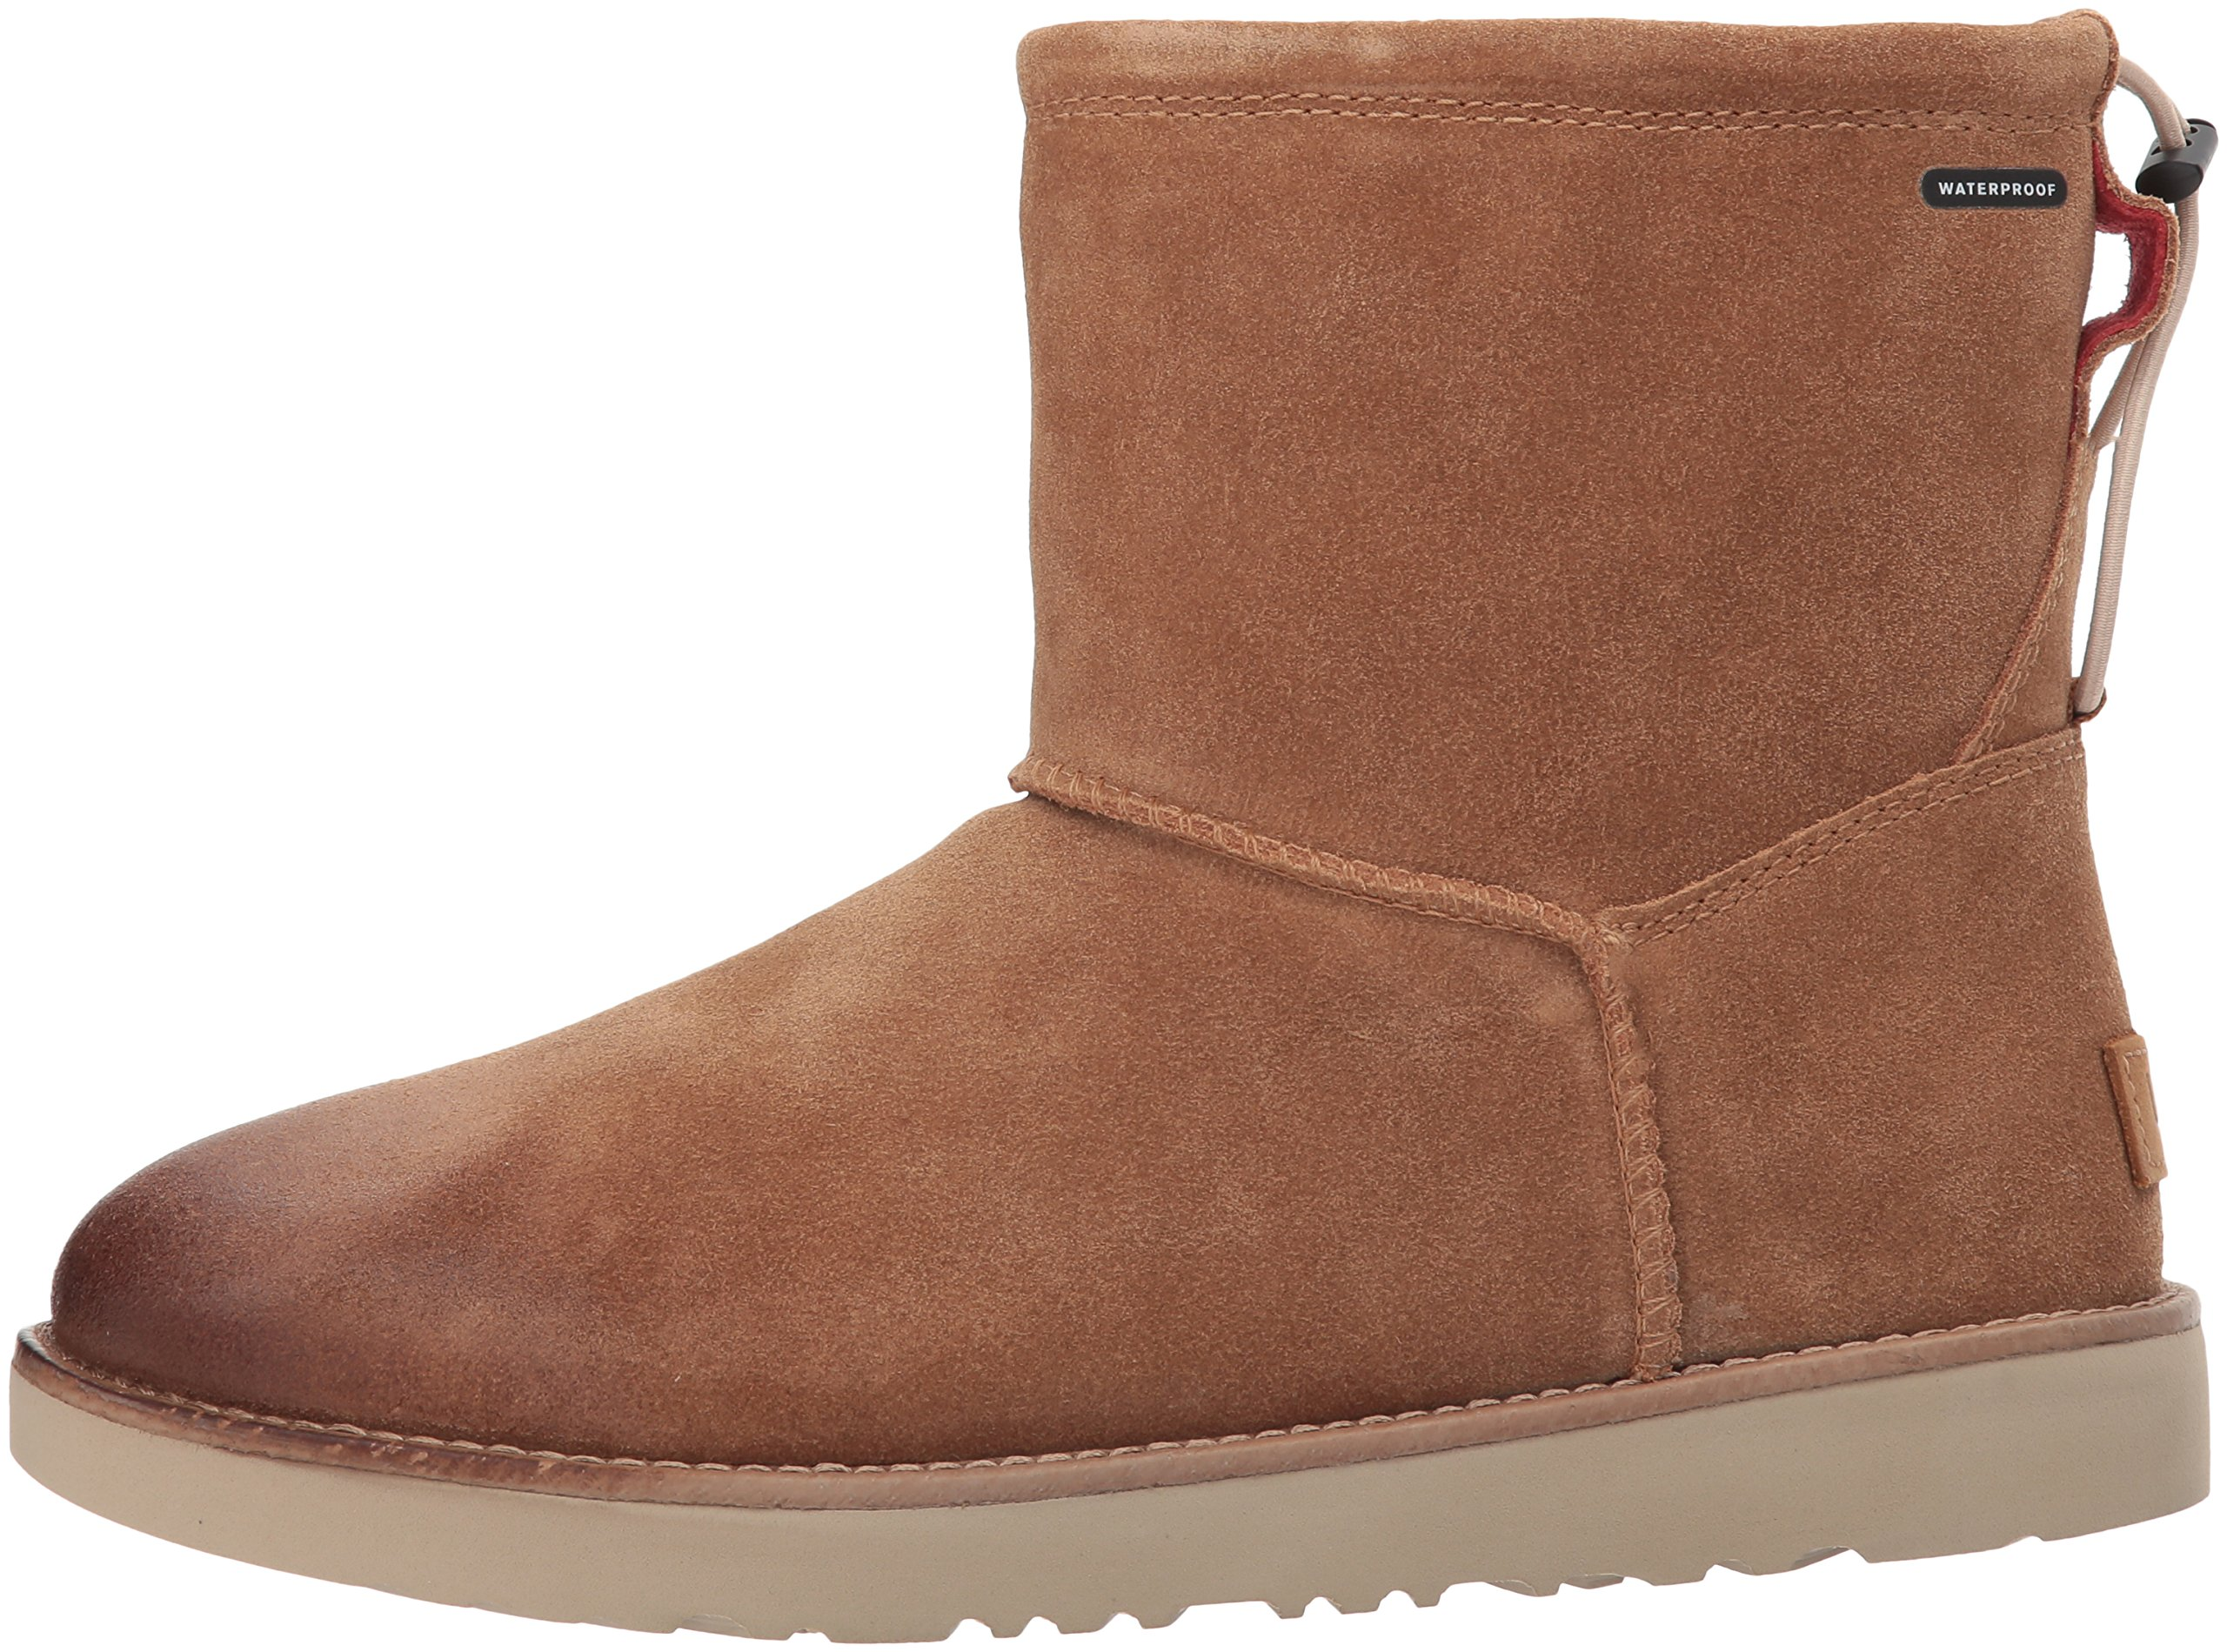 UGG Men's Classic Toggle Waterproof Winter Boot, Chestnut, 11 M US by UGG (Image #5)